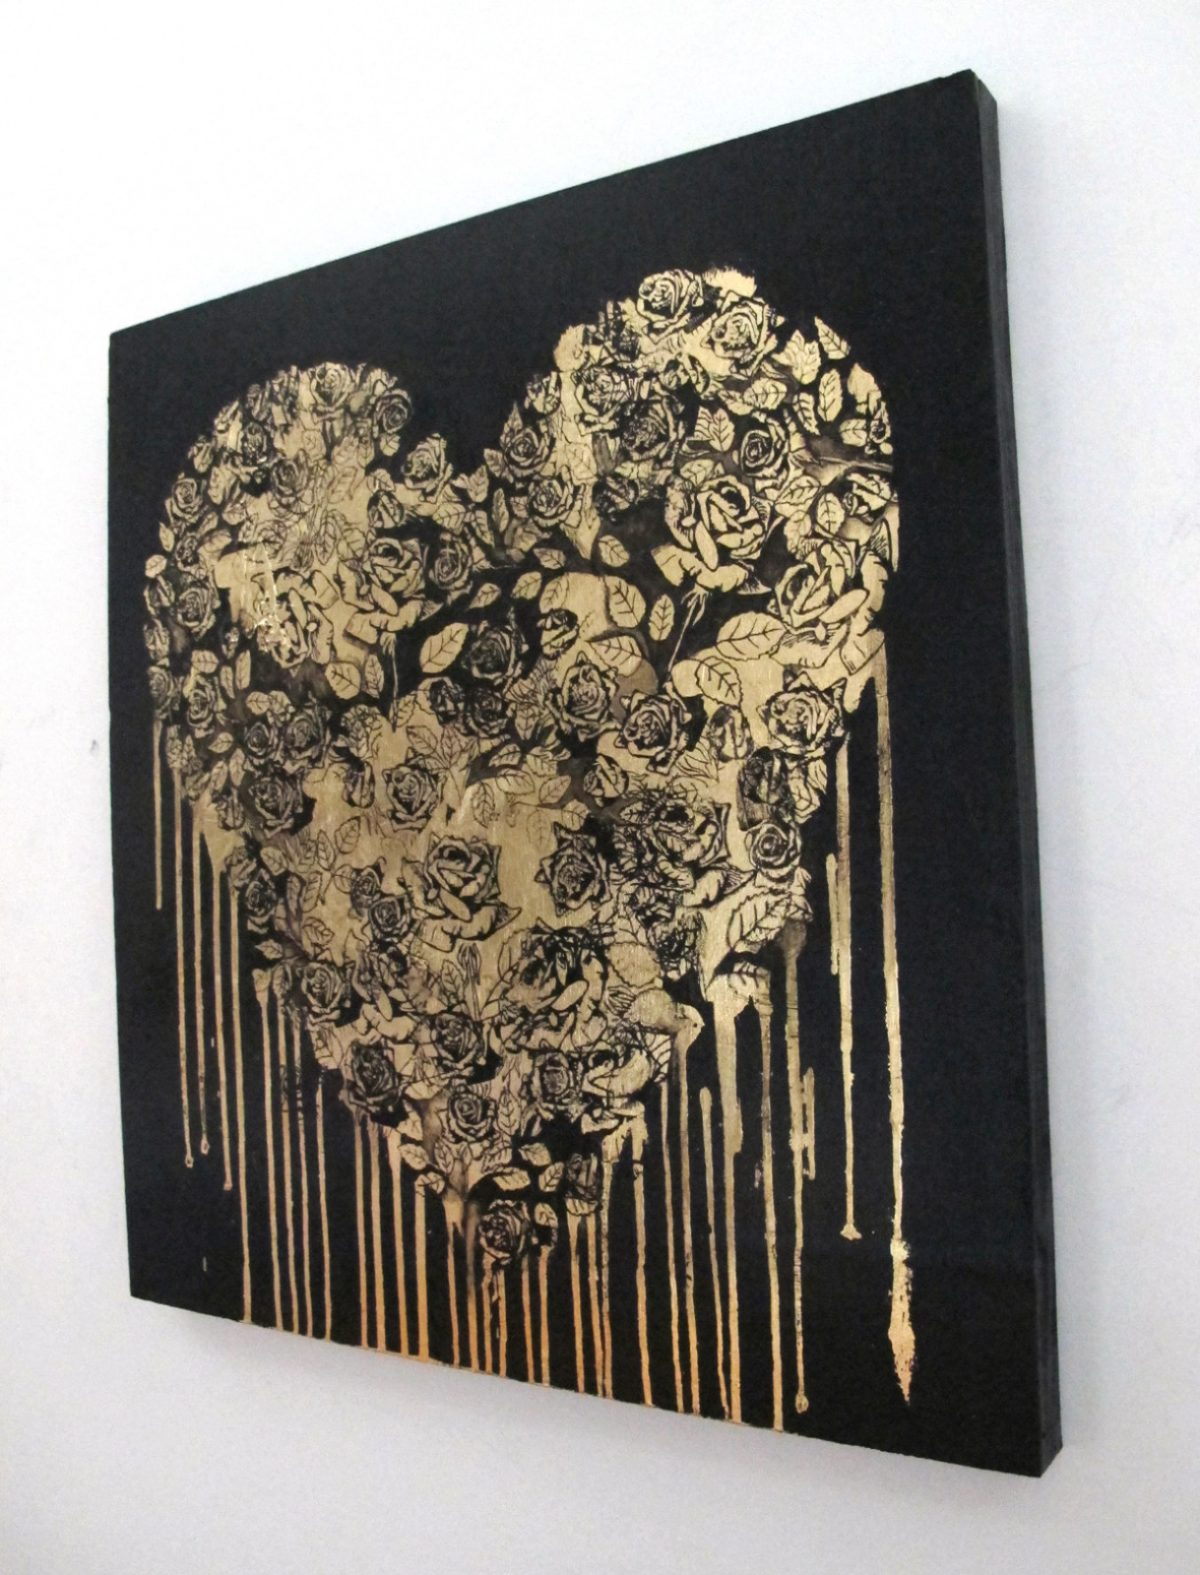 Gold Heart | Original Art gift idea | Mishkalo Bridal Registry